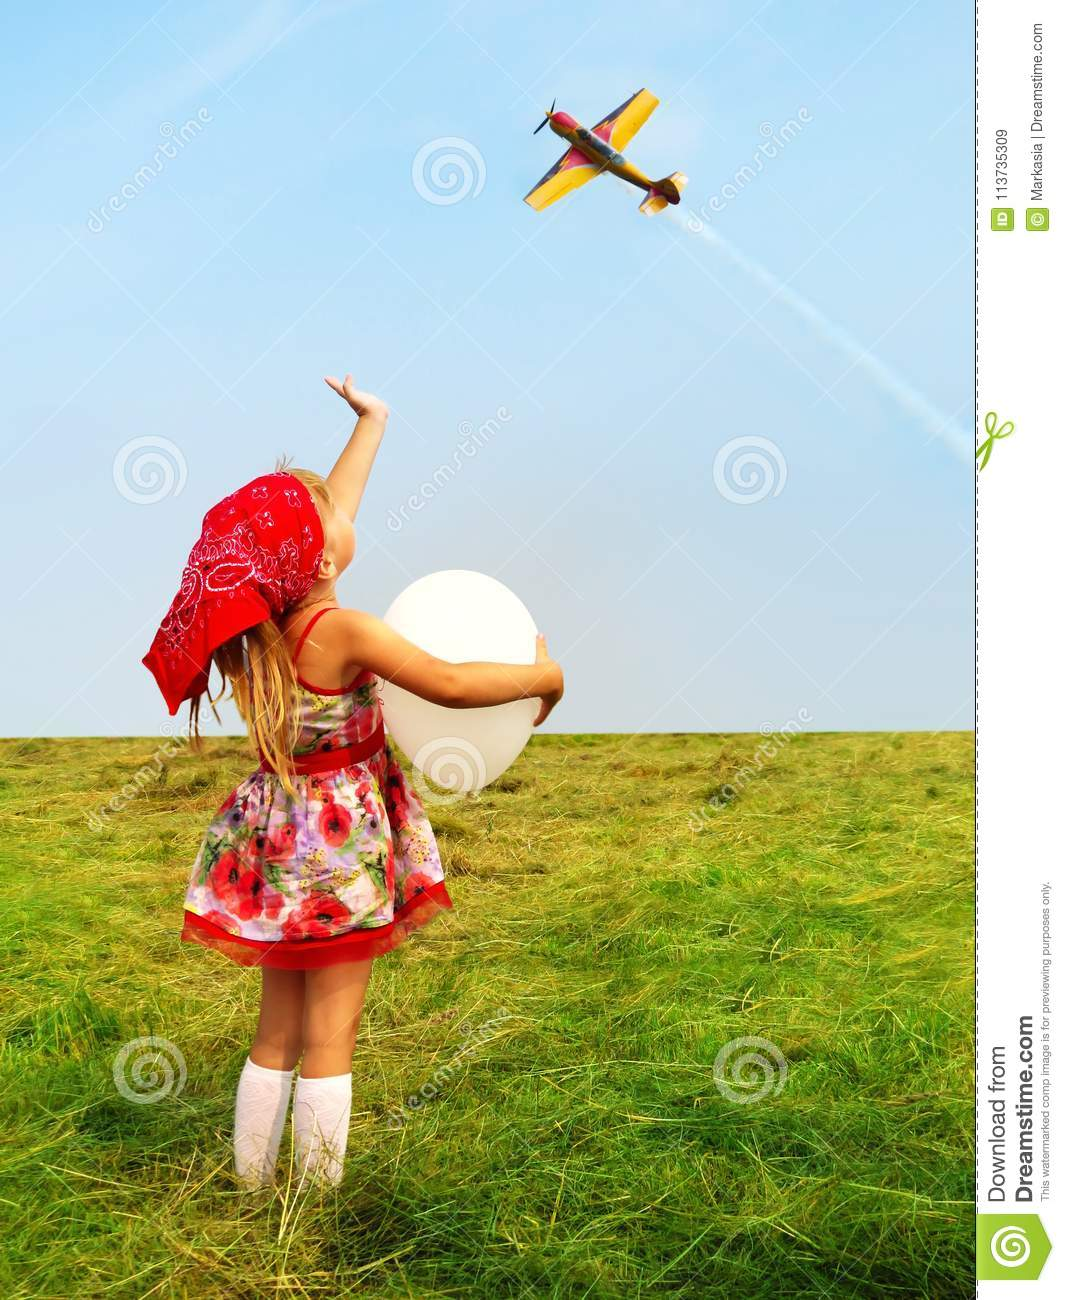 Girl with a balloon waving a hand flying aircraft.